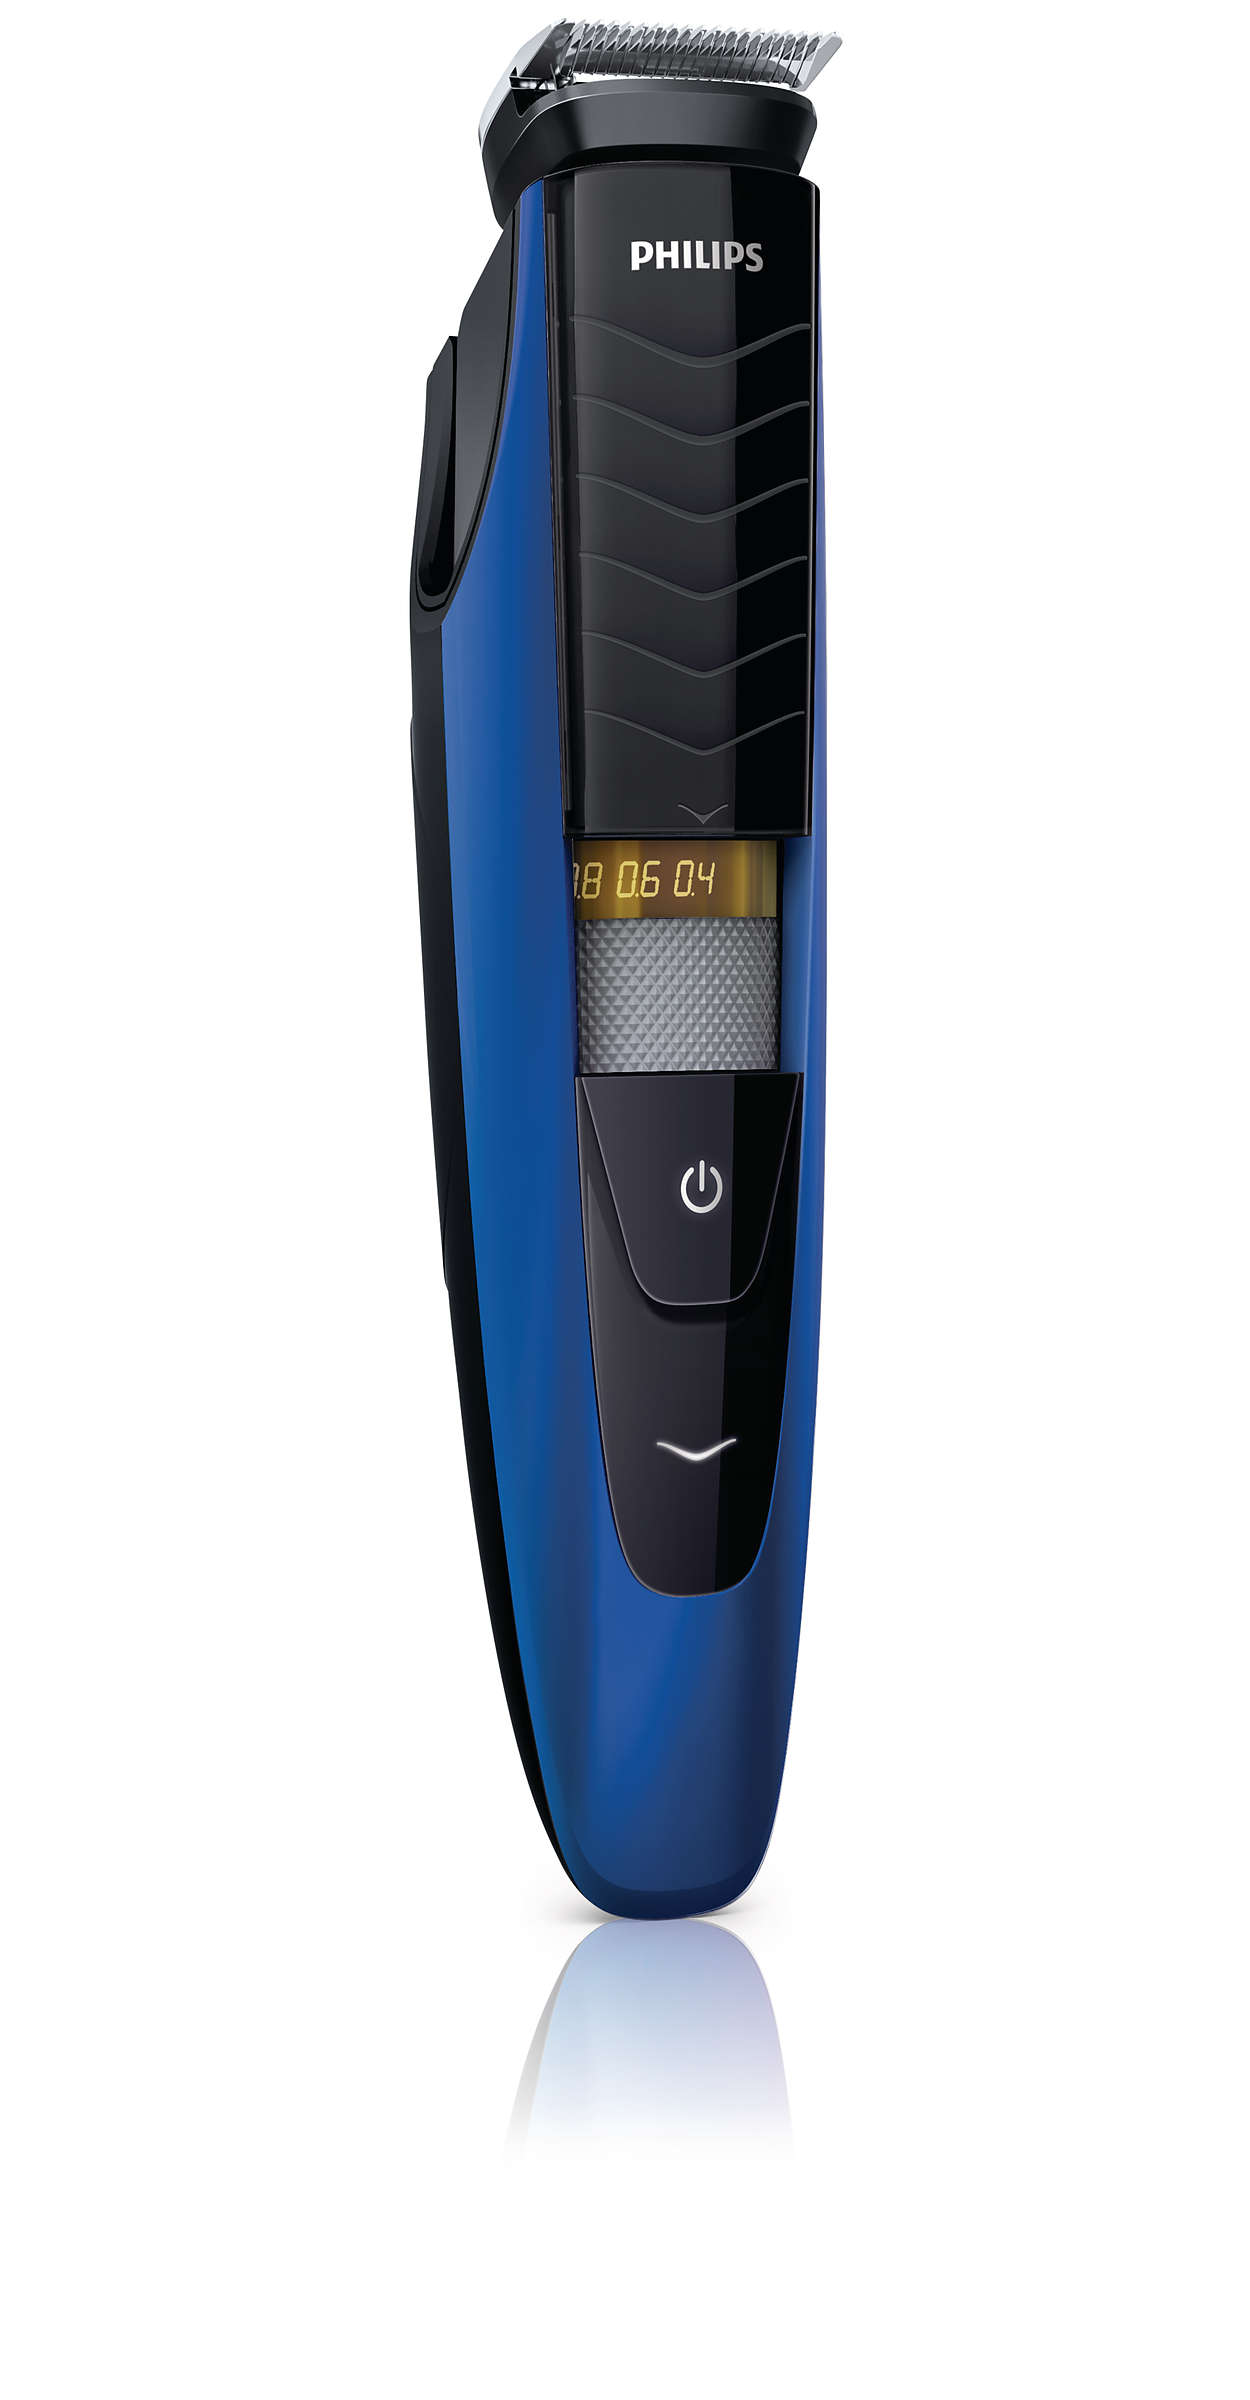 beardtrimmer series 5000 waterproof beard trimmer bt5262 13 philips. Black Bedroom Furniture Sets. Home Design Ideas